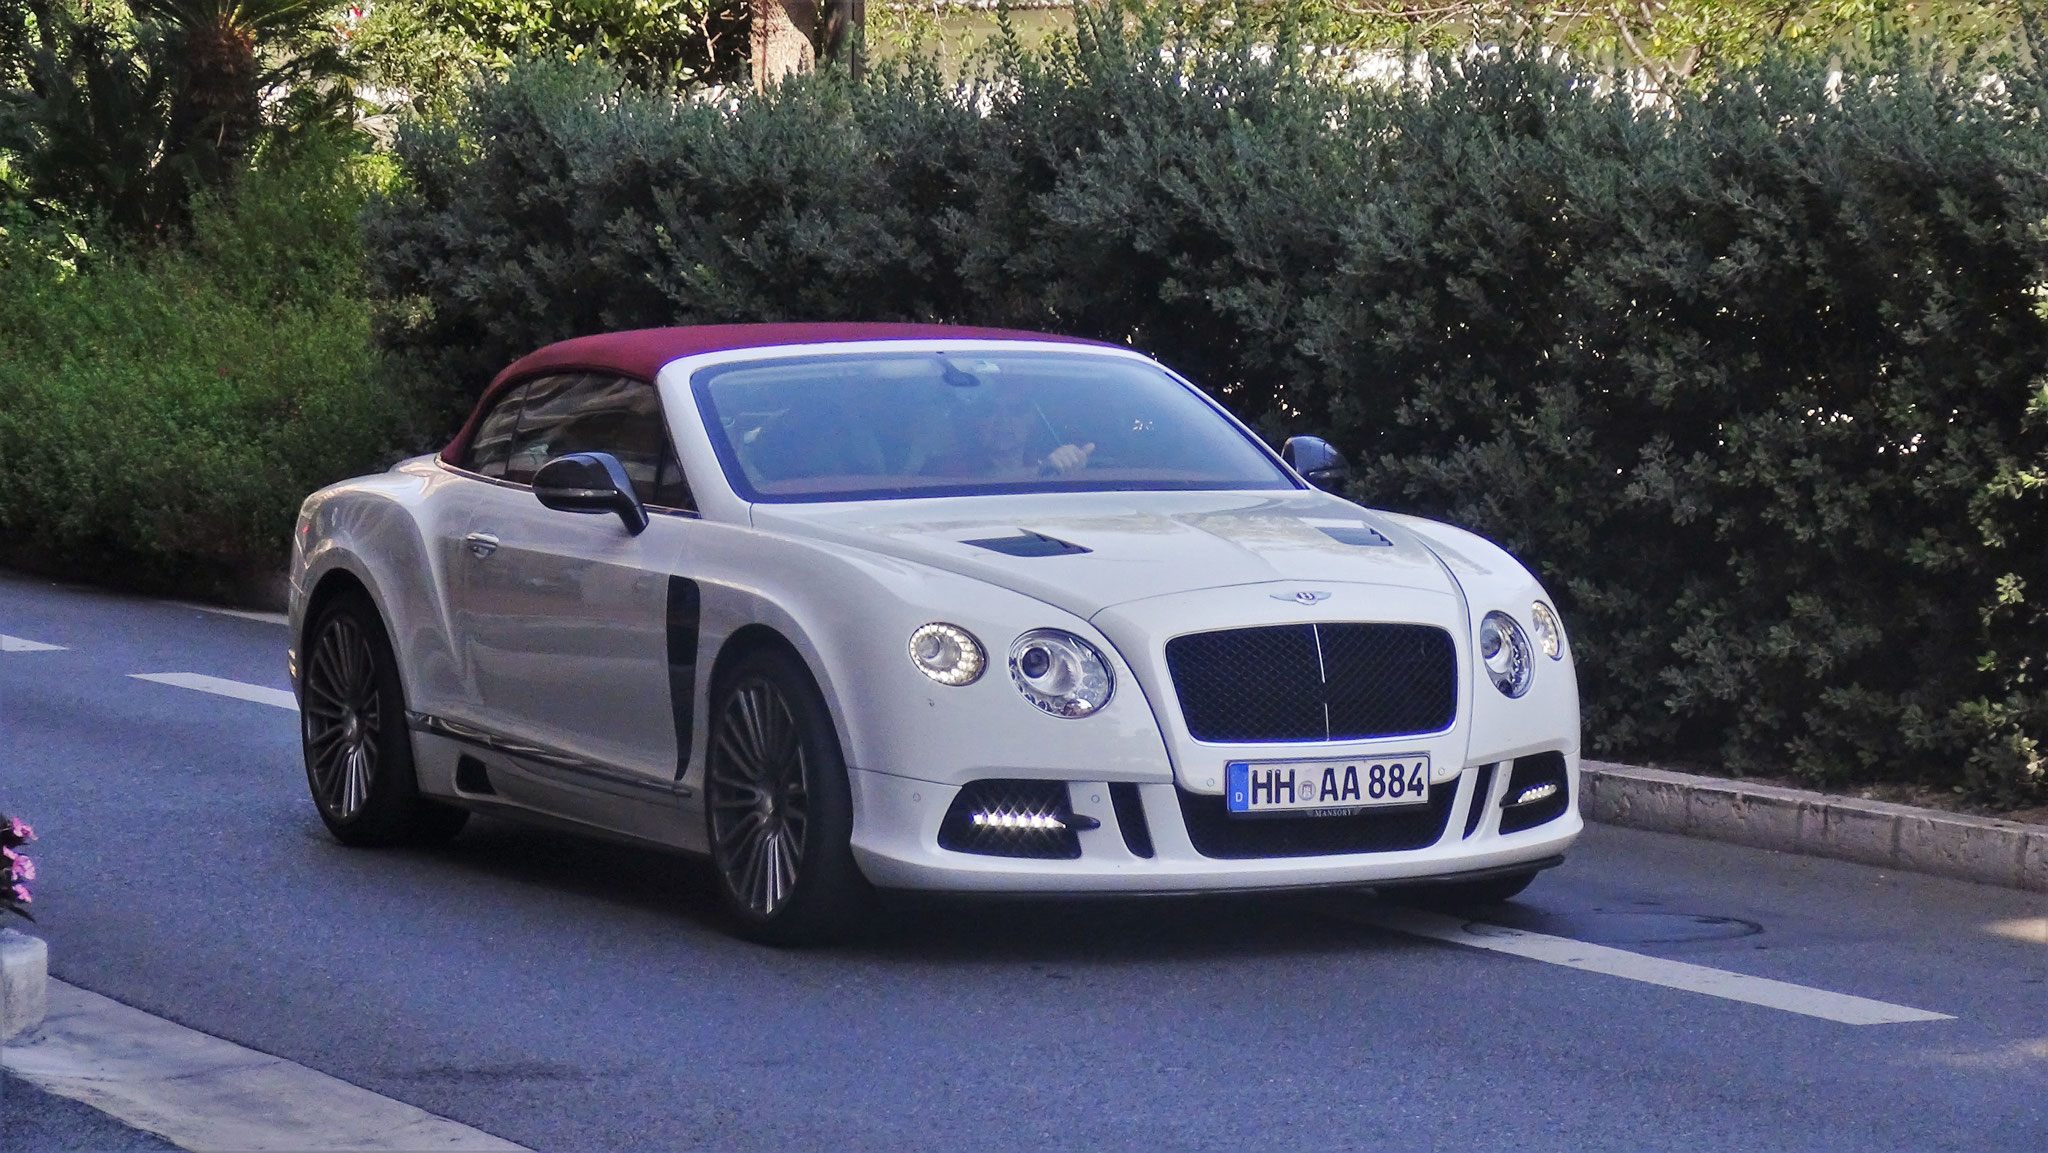 Mansory Continental GTC - HH-AA-884